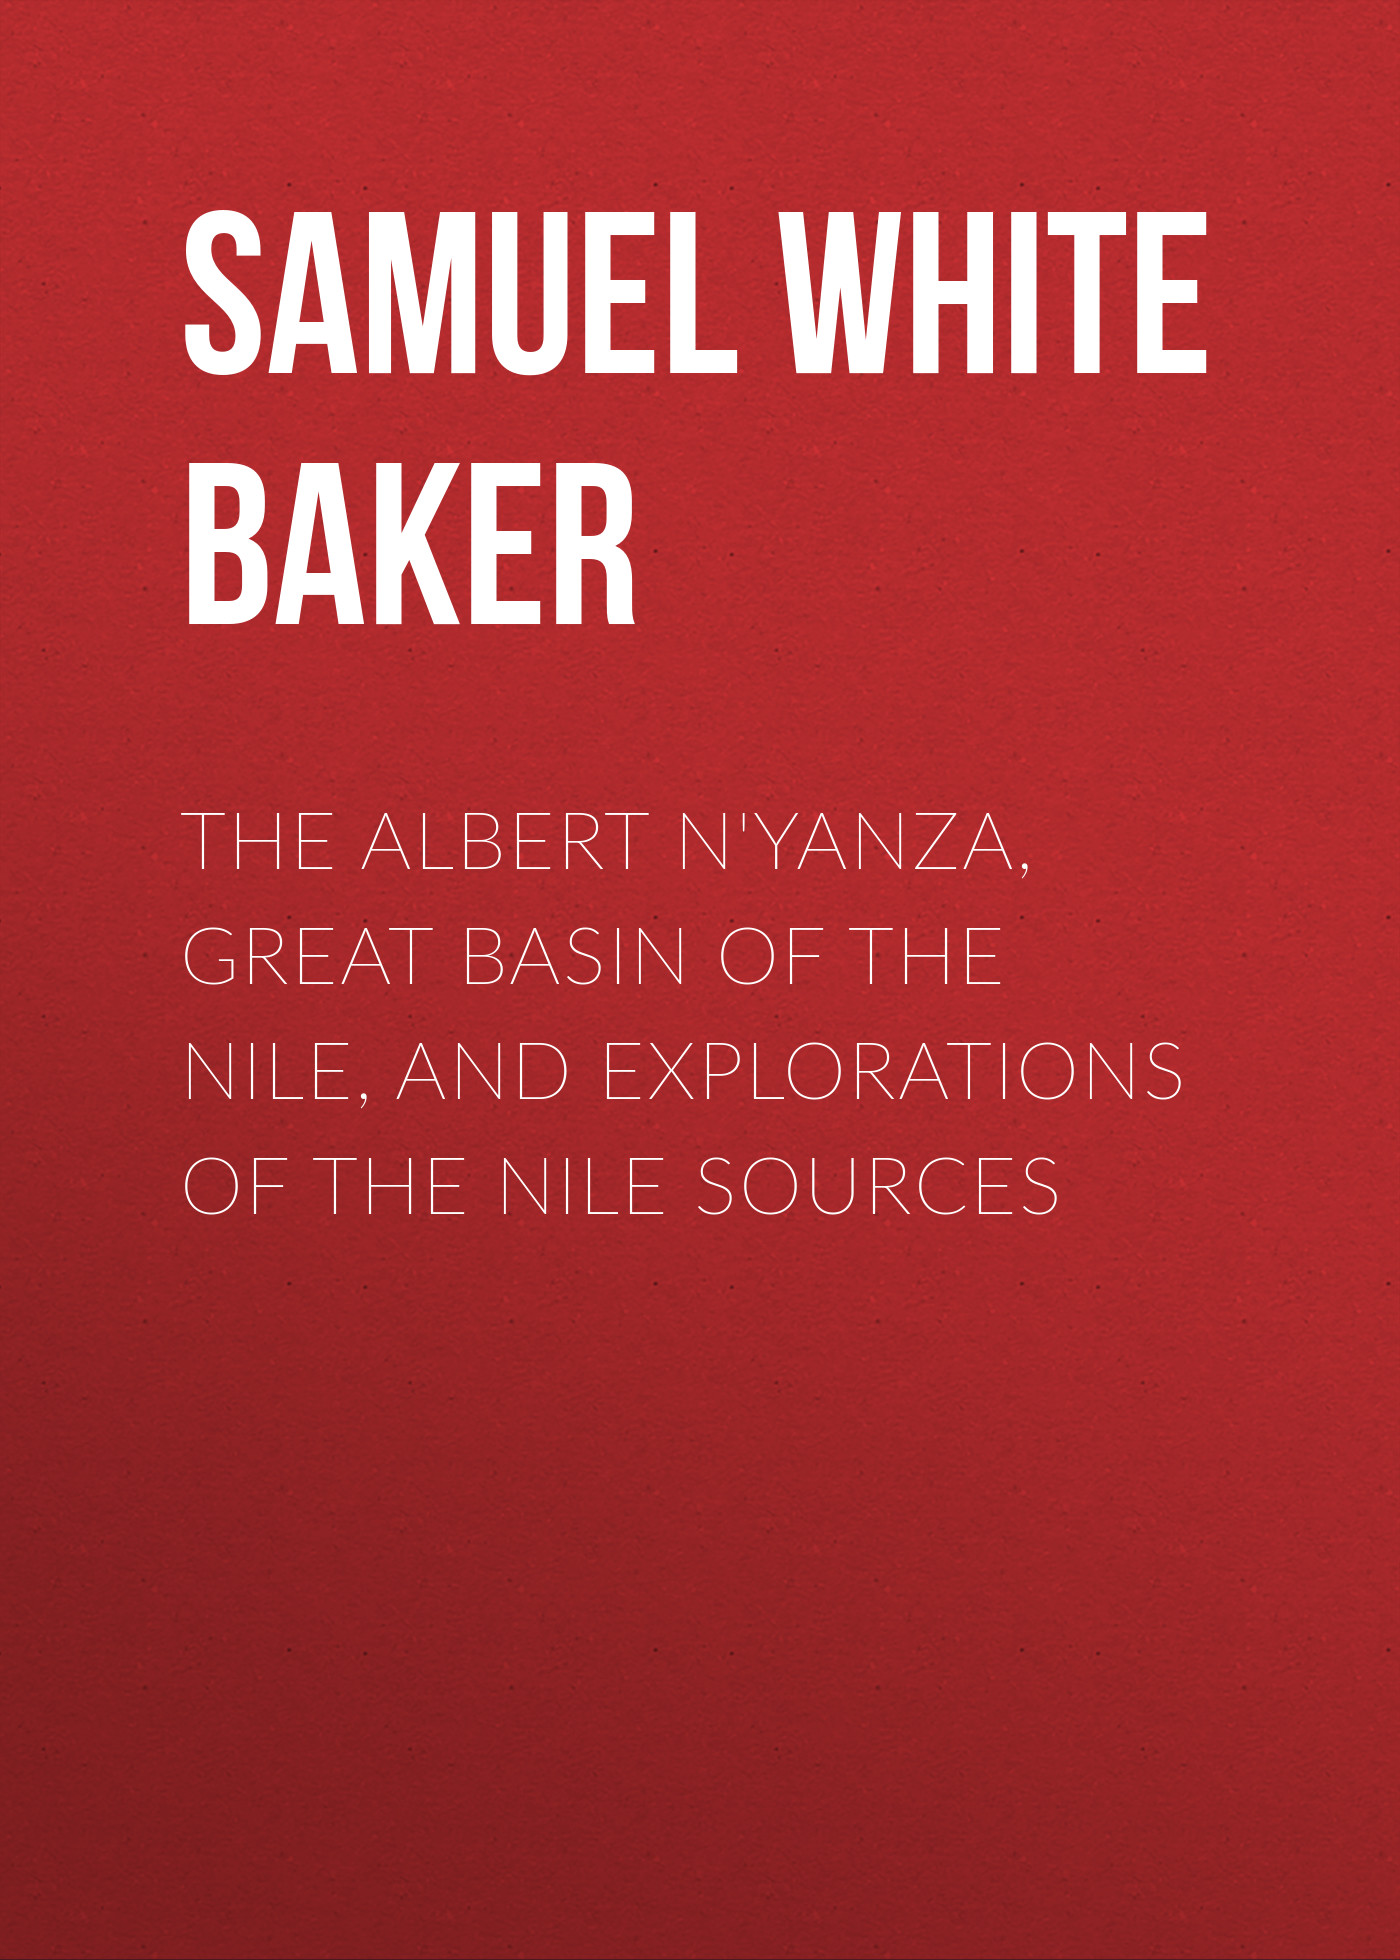 Samuel White Baker The Albert N'Yanza, Great Basin of the Nile, And Explorations of the Nile Sources